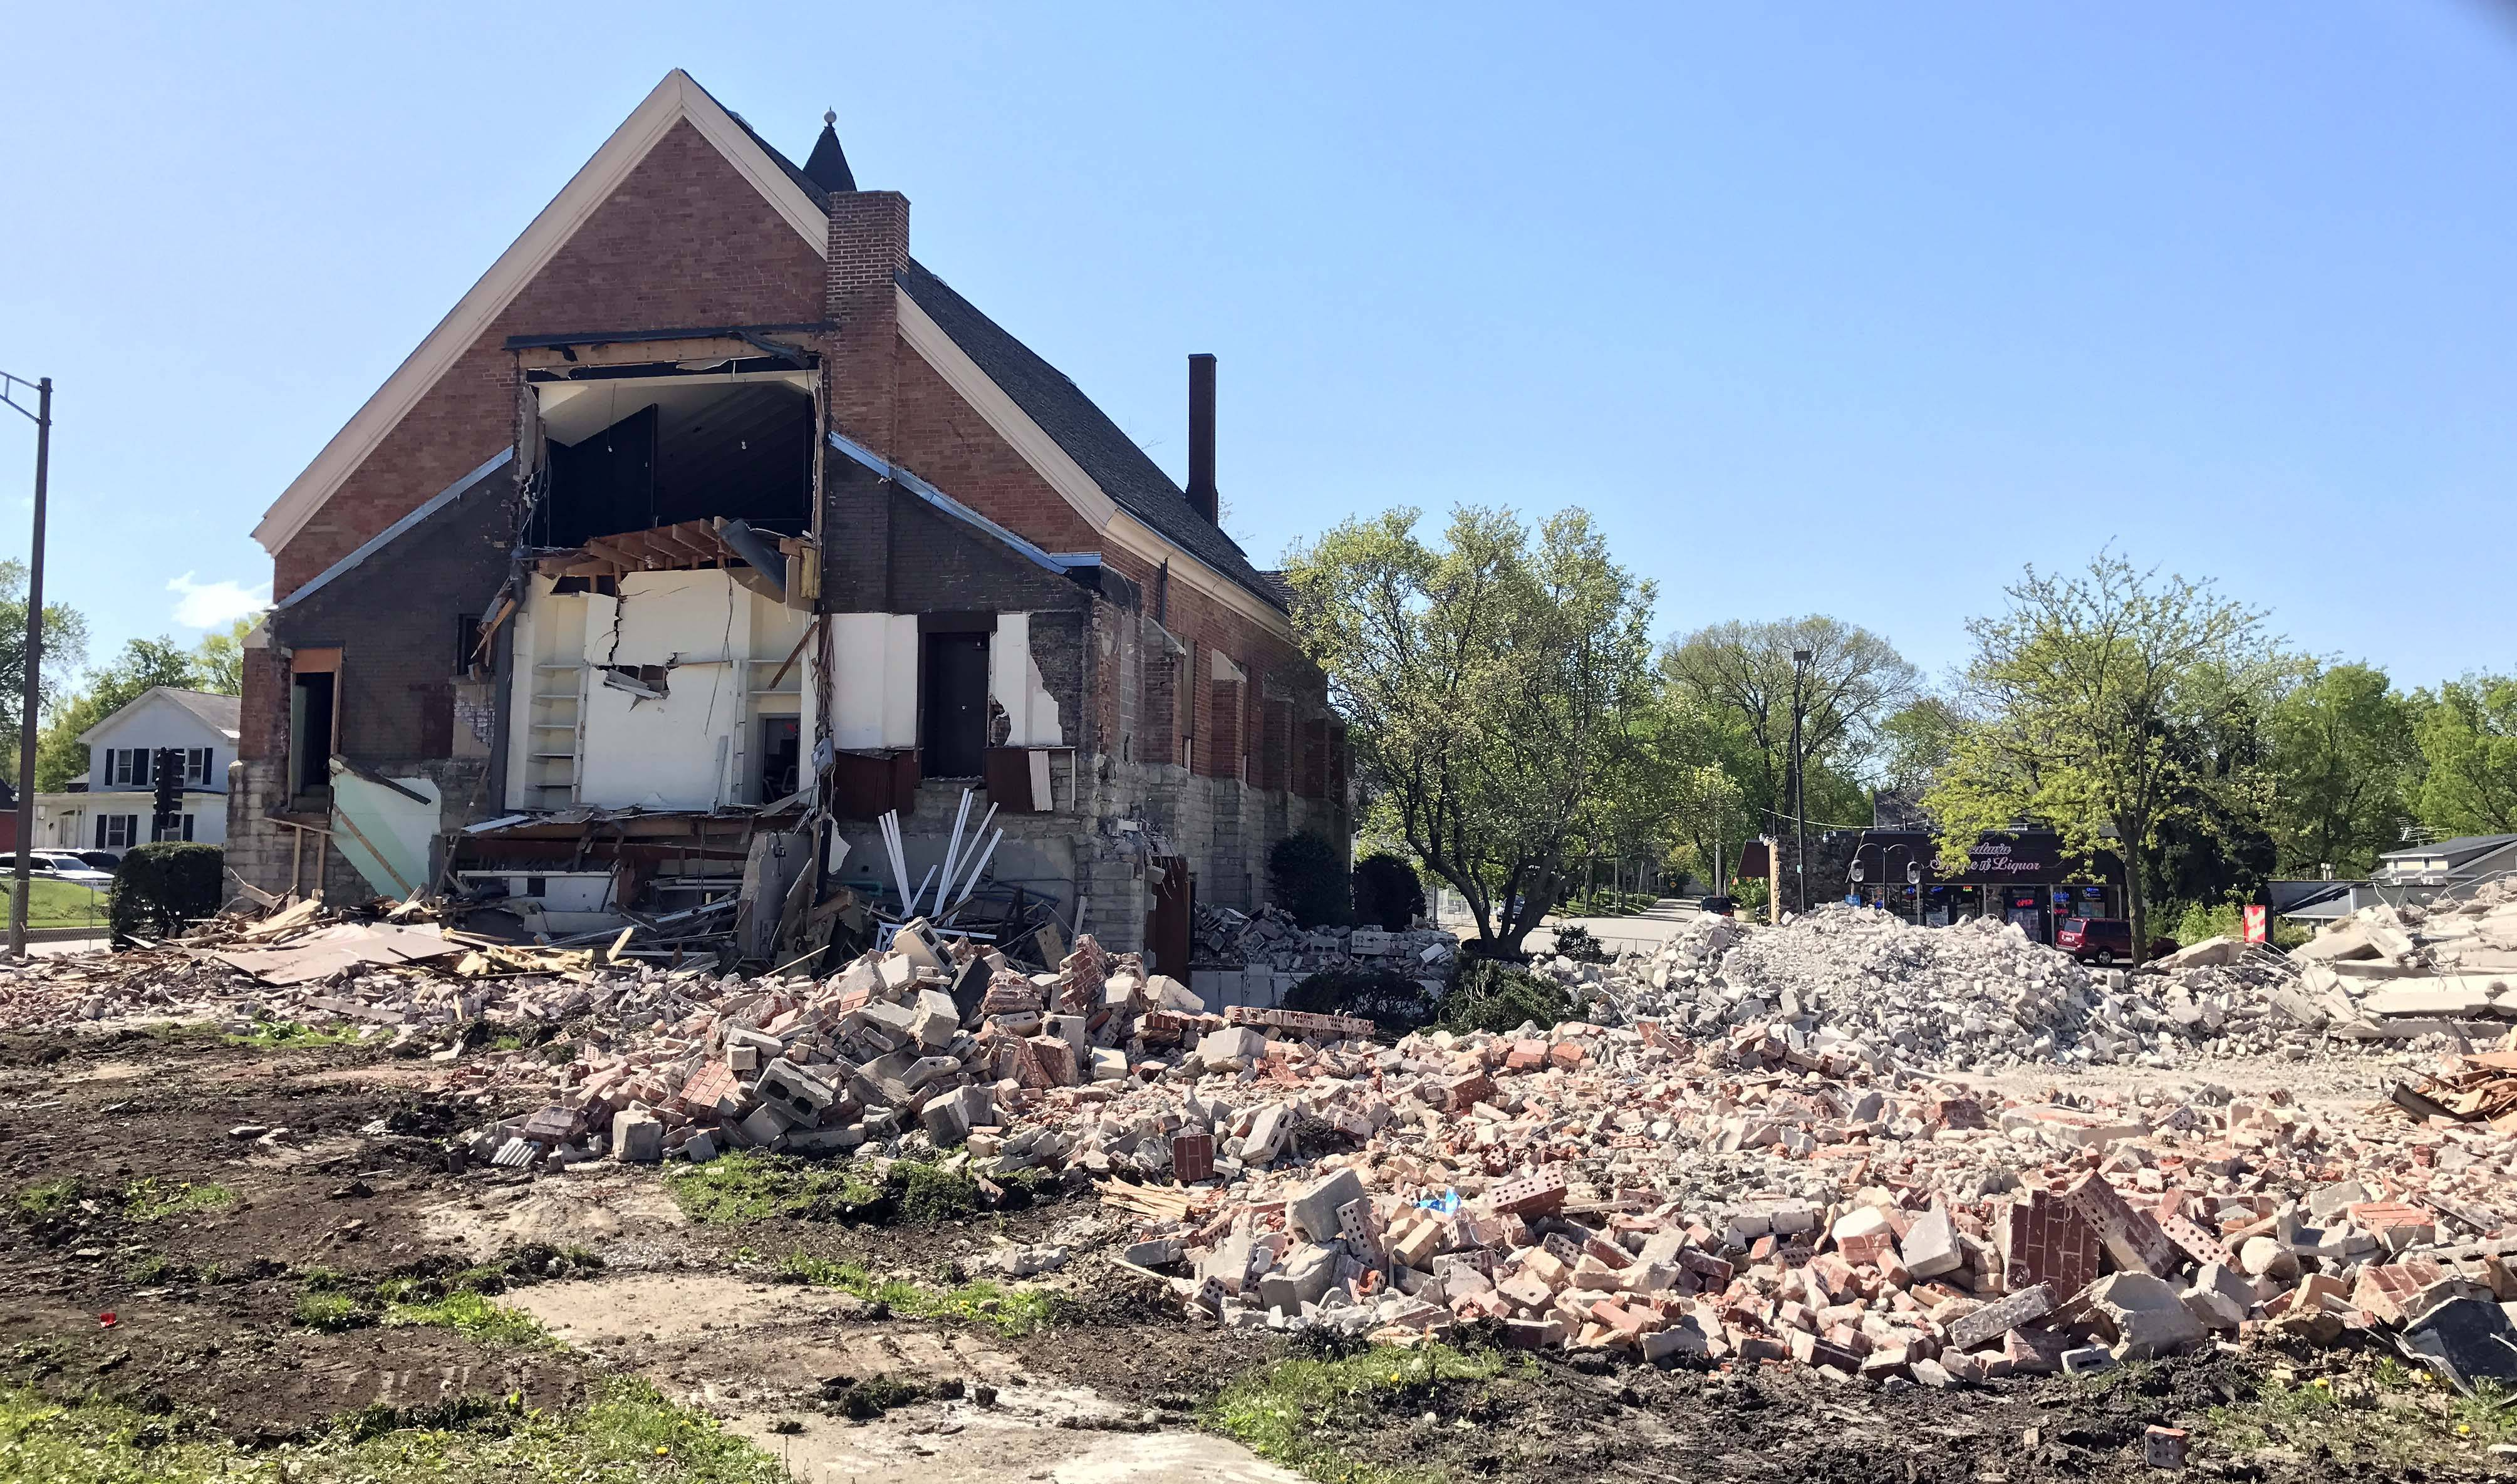 The former First Baptist Church of Batavia was demolished in May to make way for the One North Washington development in downtown Batavia.